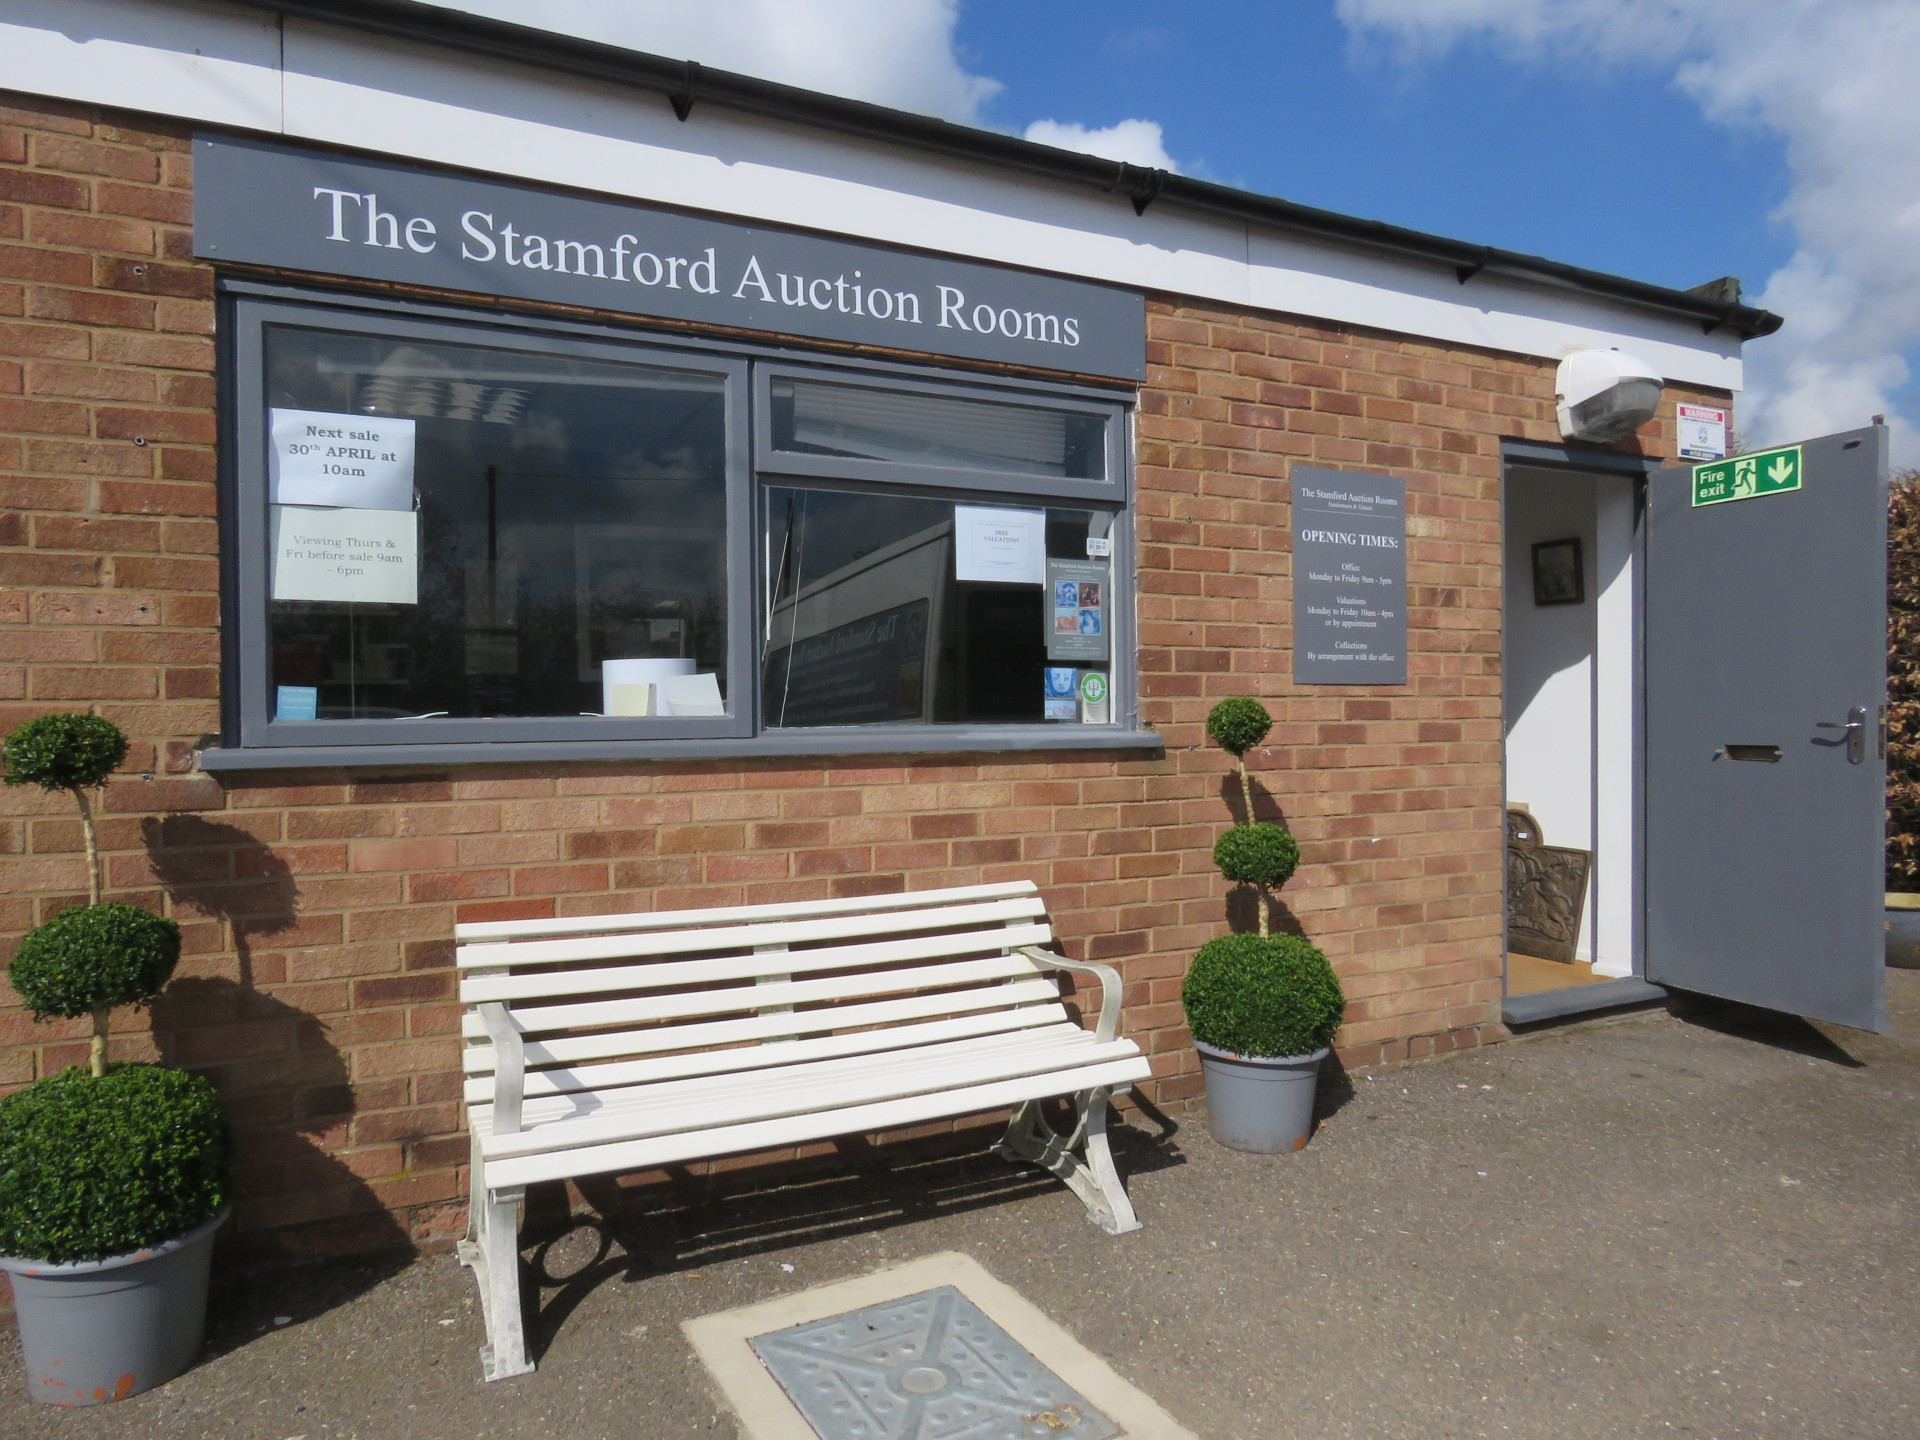 Stamford Auction Rooms in Little Bytham